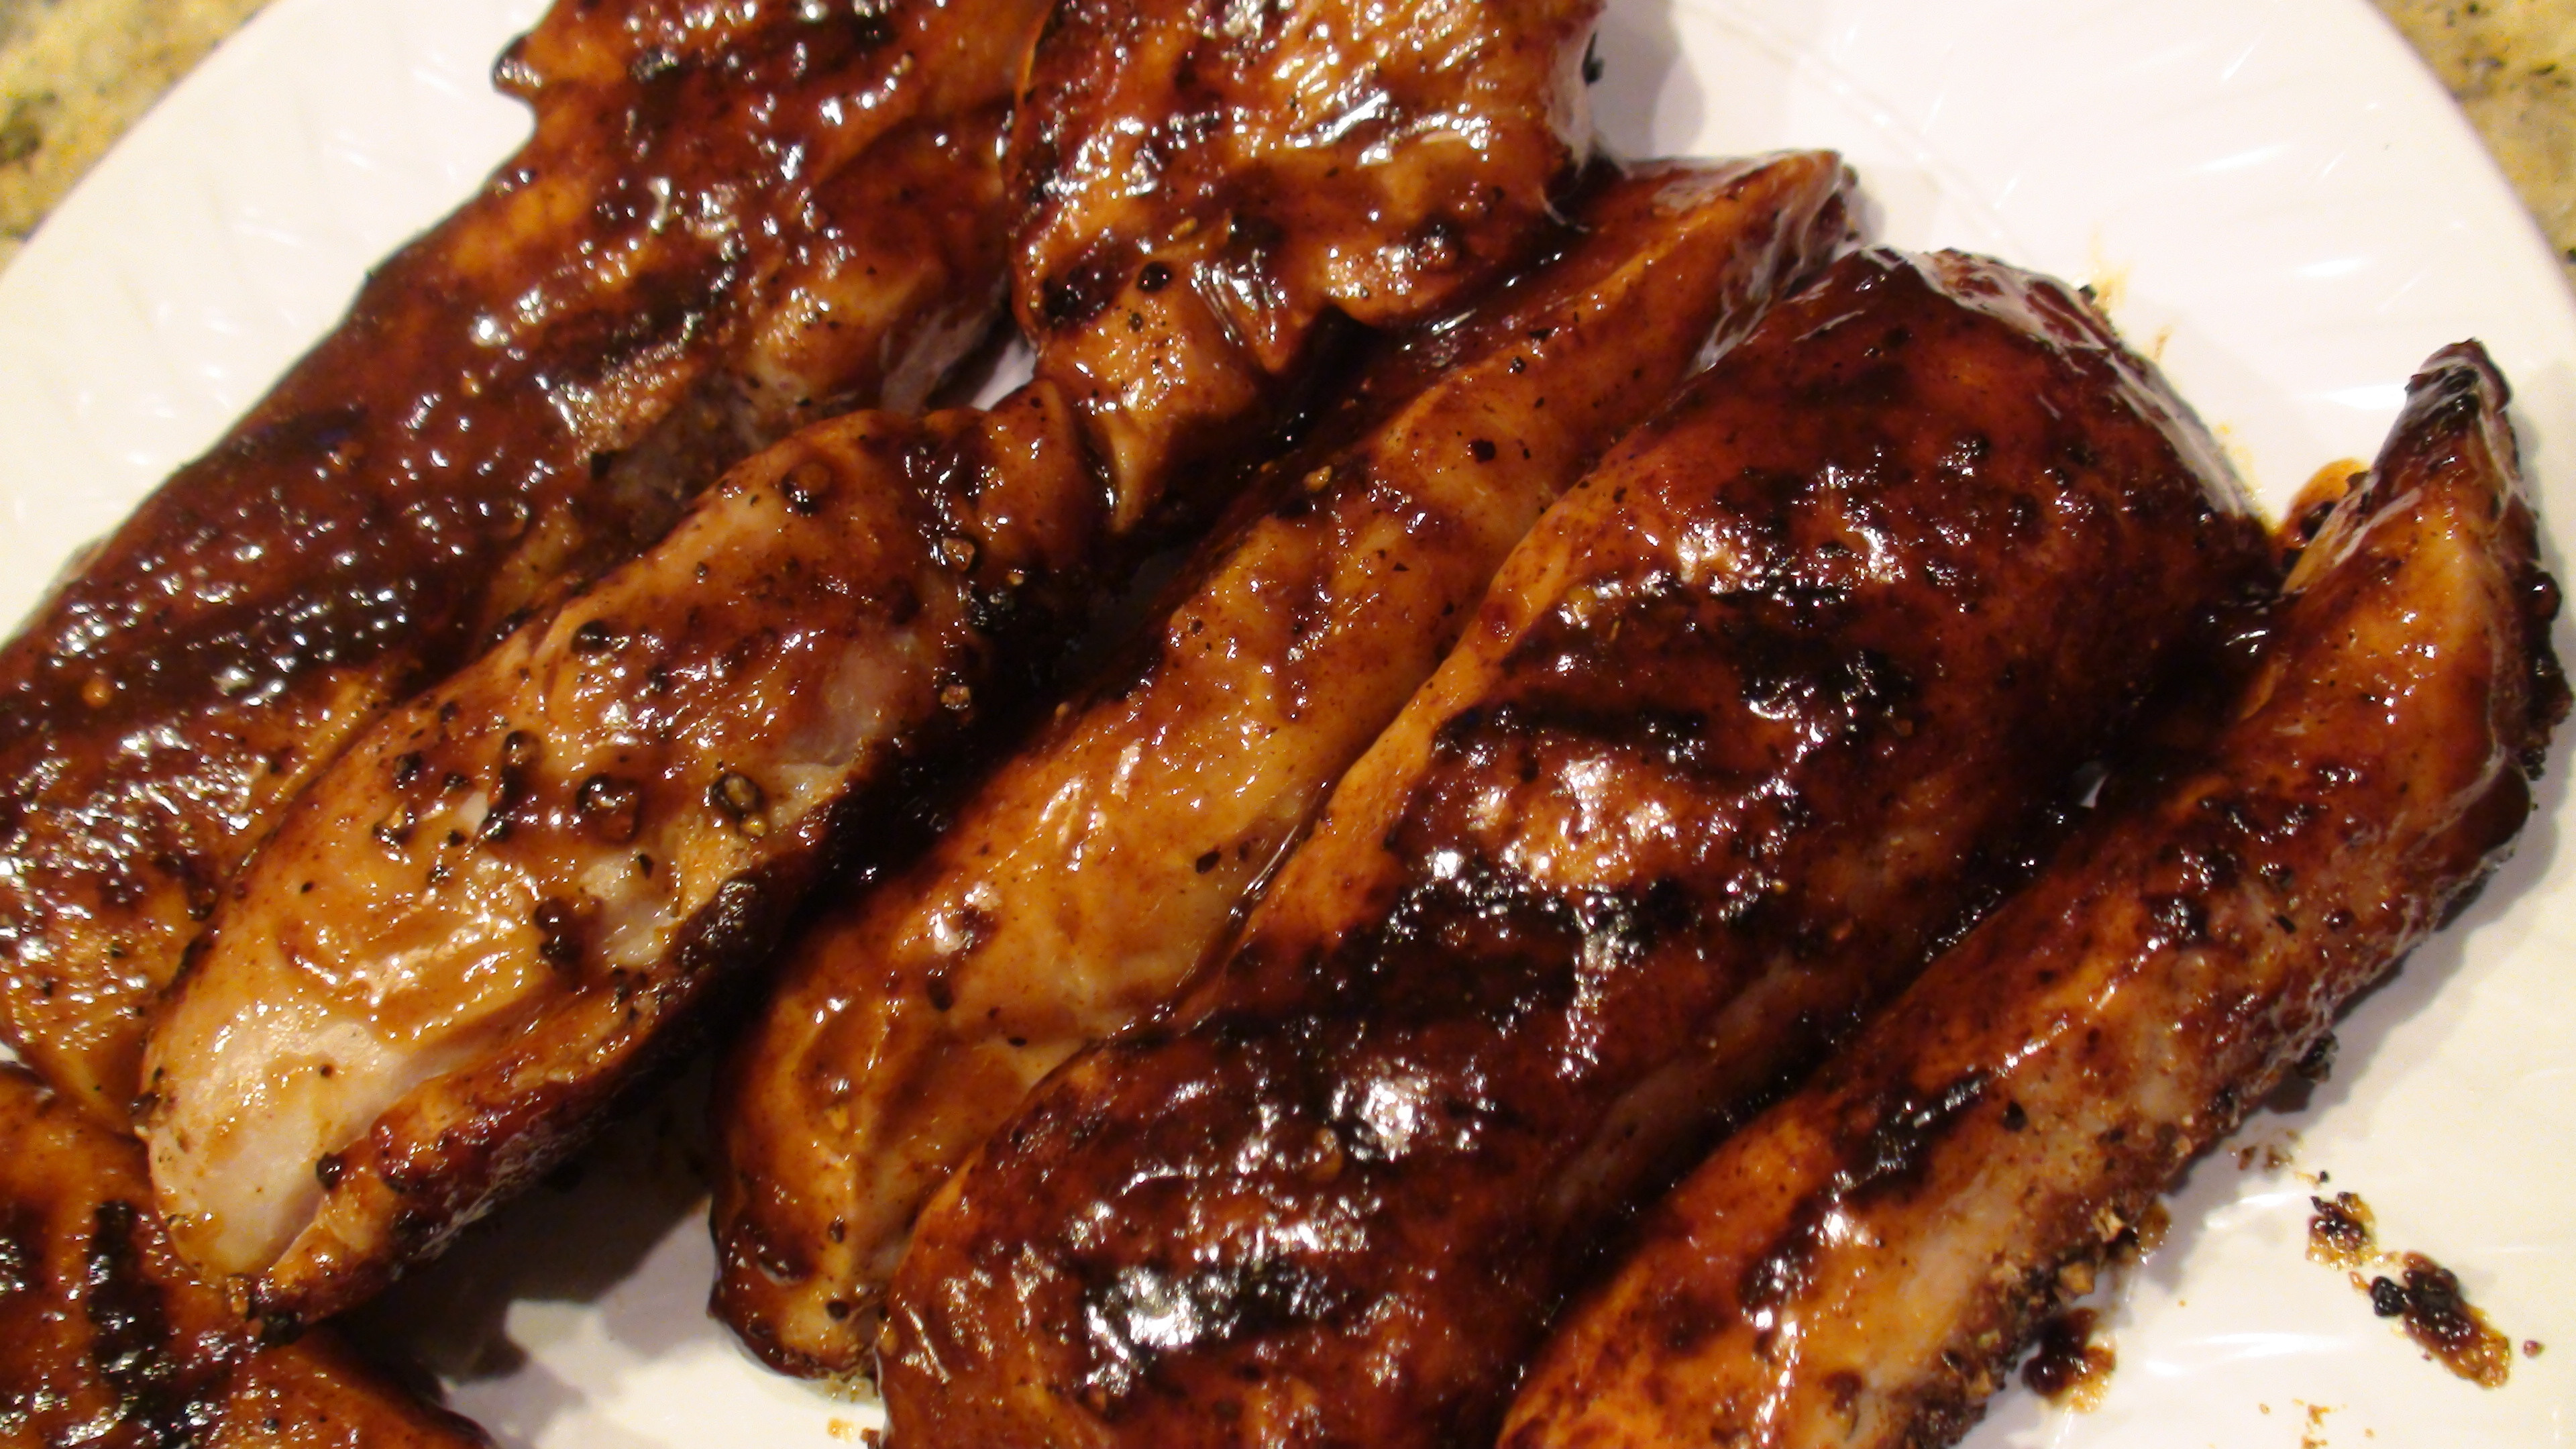 How Long To Cook Boneless Pork Ribs In Oven At 350  Quelques Liens Utiles